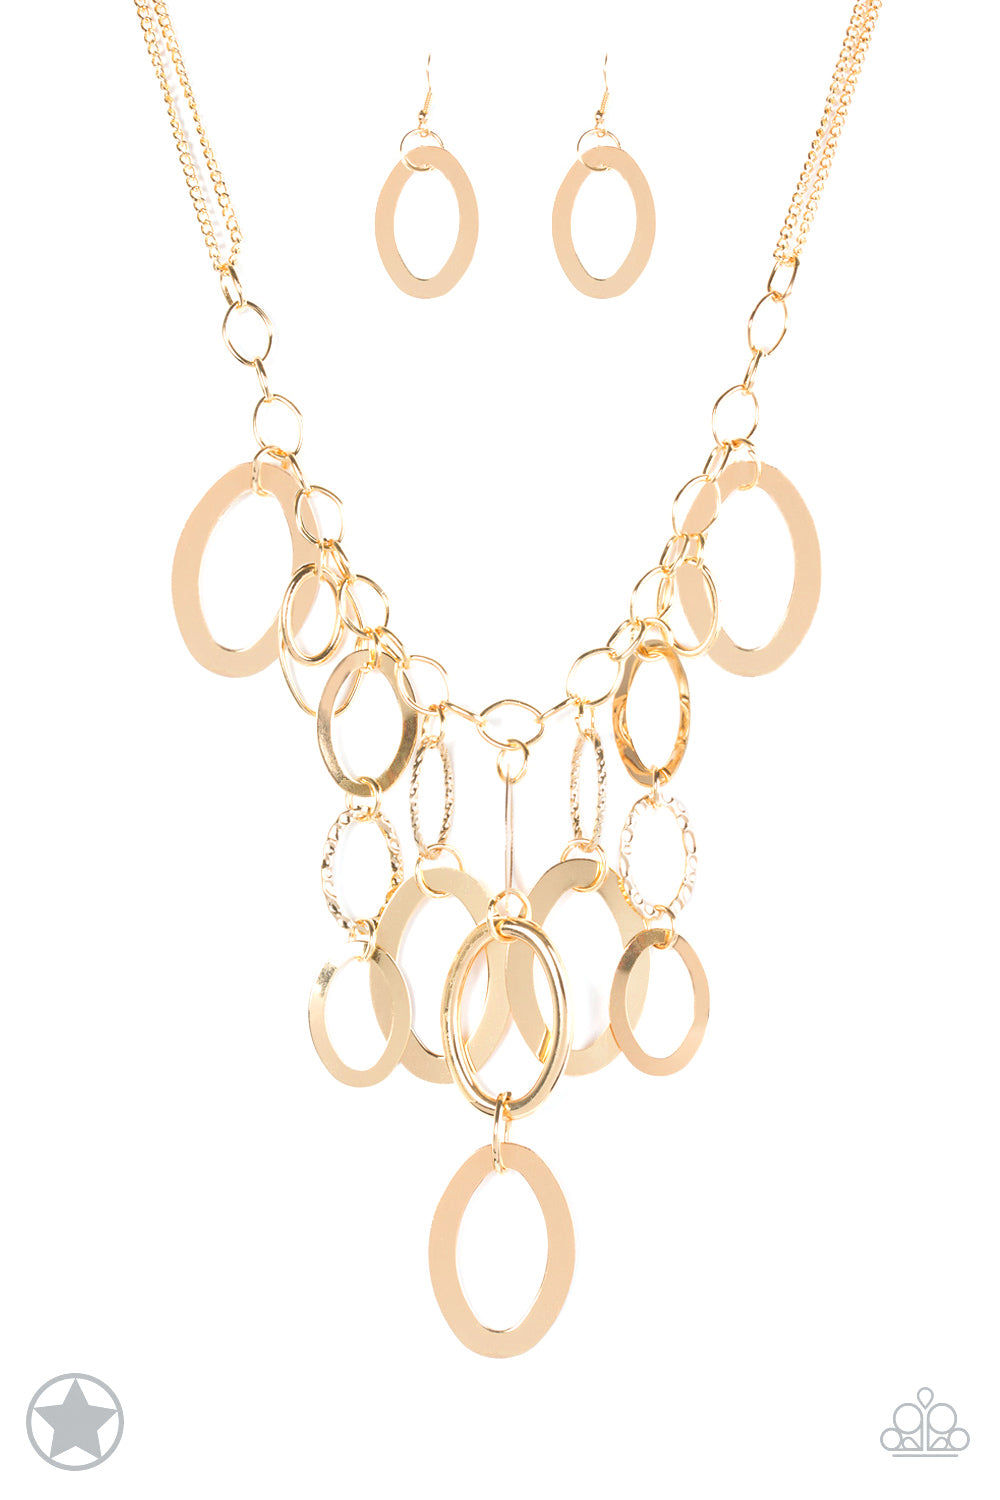 Paparazzi Necklace Blockbuster - Golden Spell - Gold